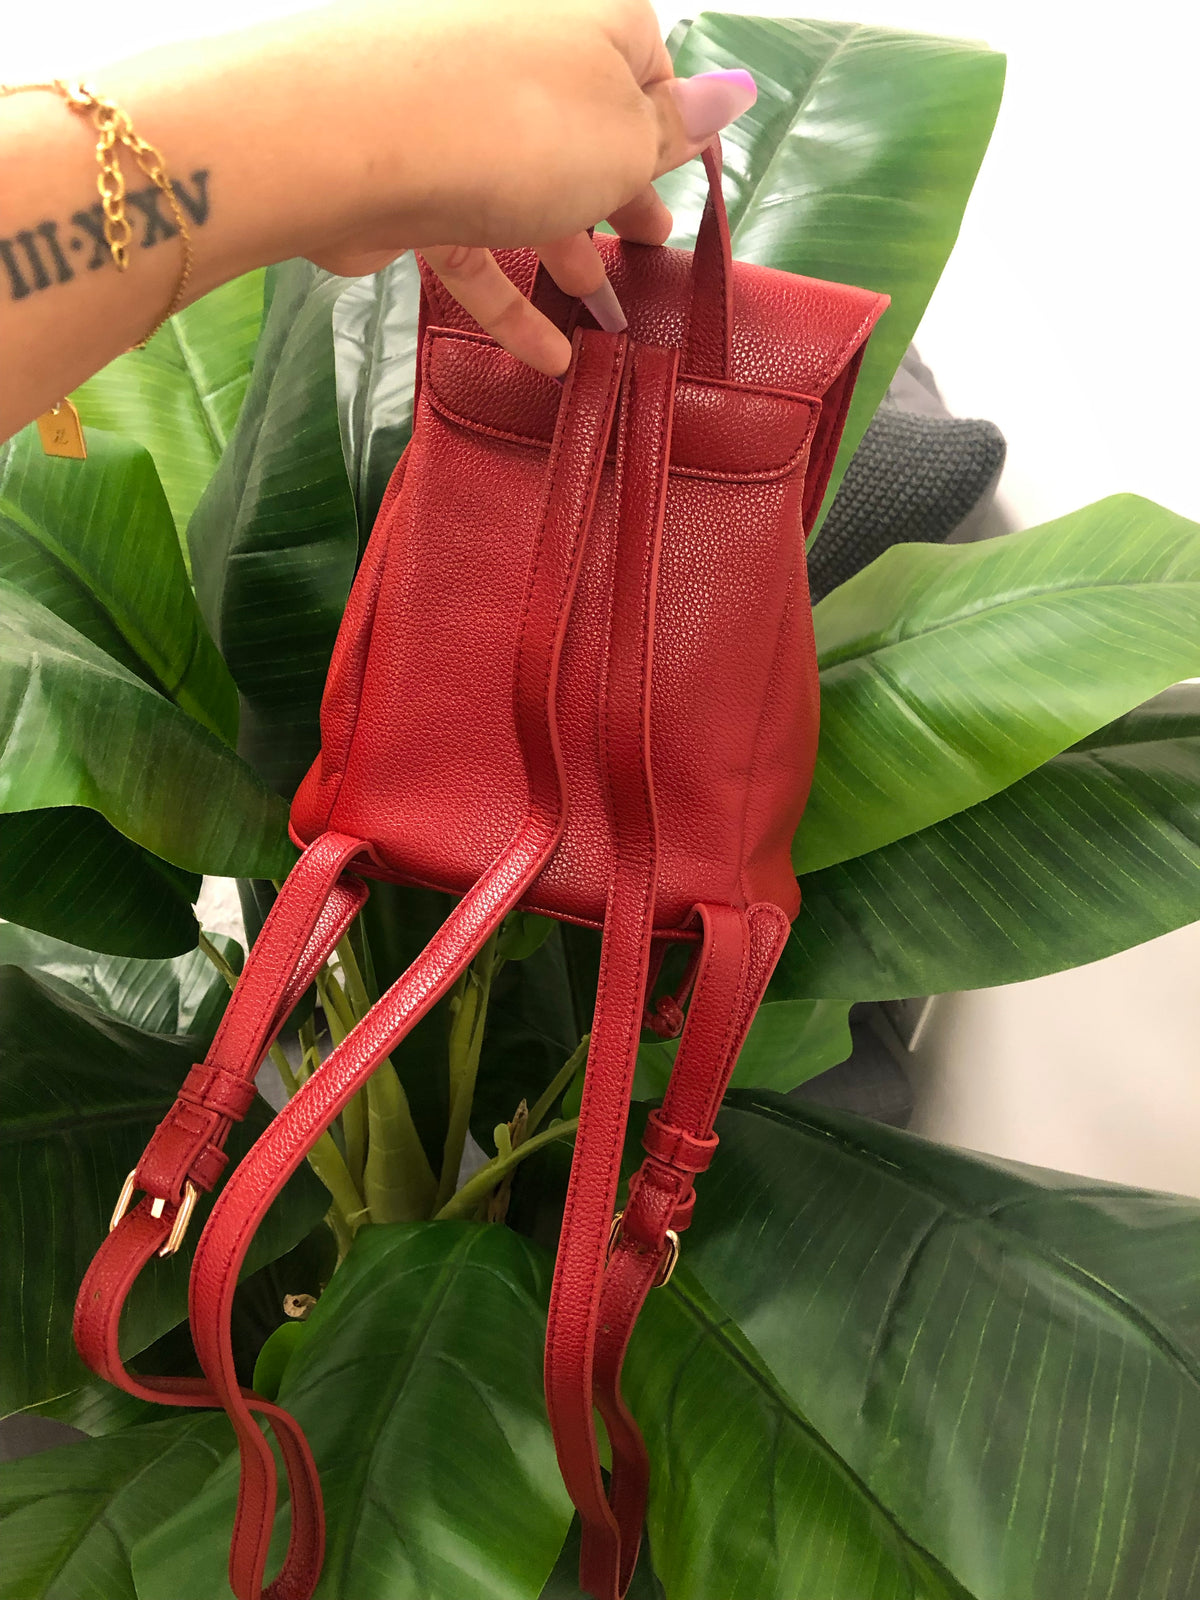 red pleather mini backpack with flap opening top.